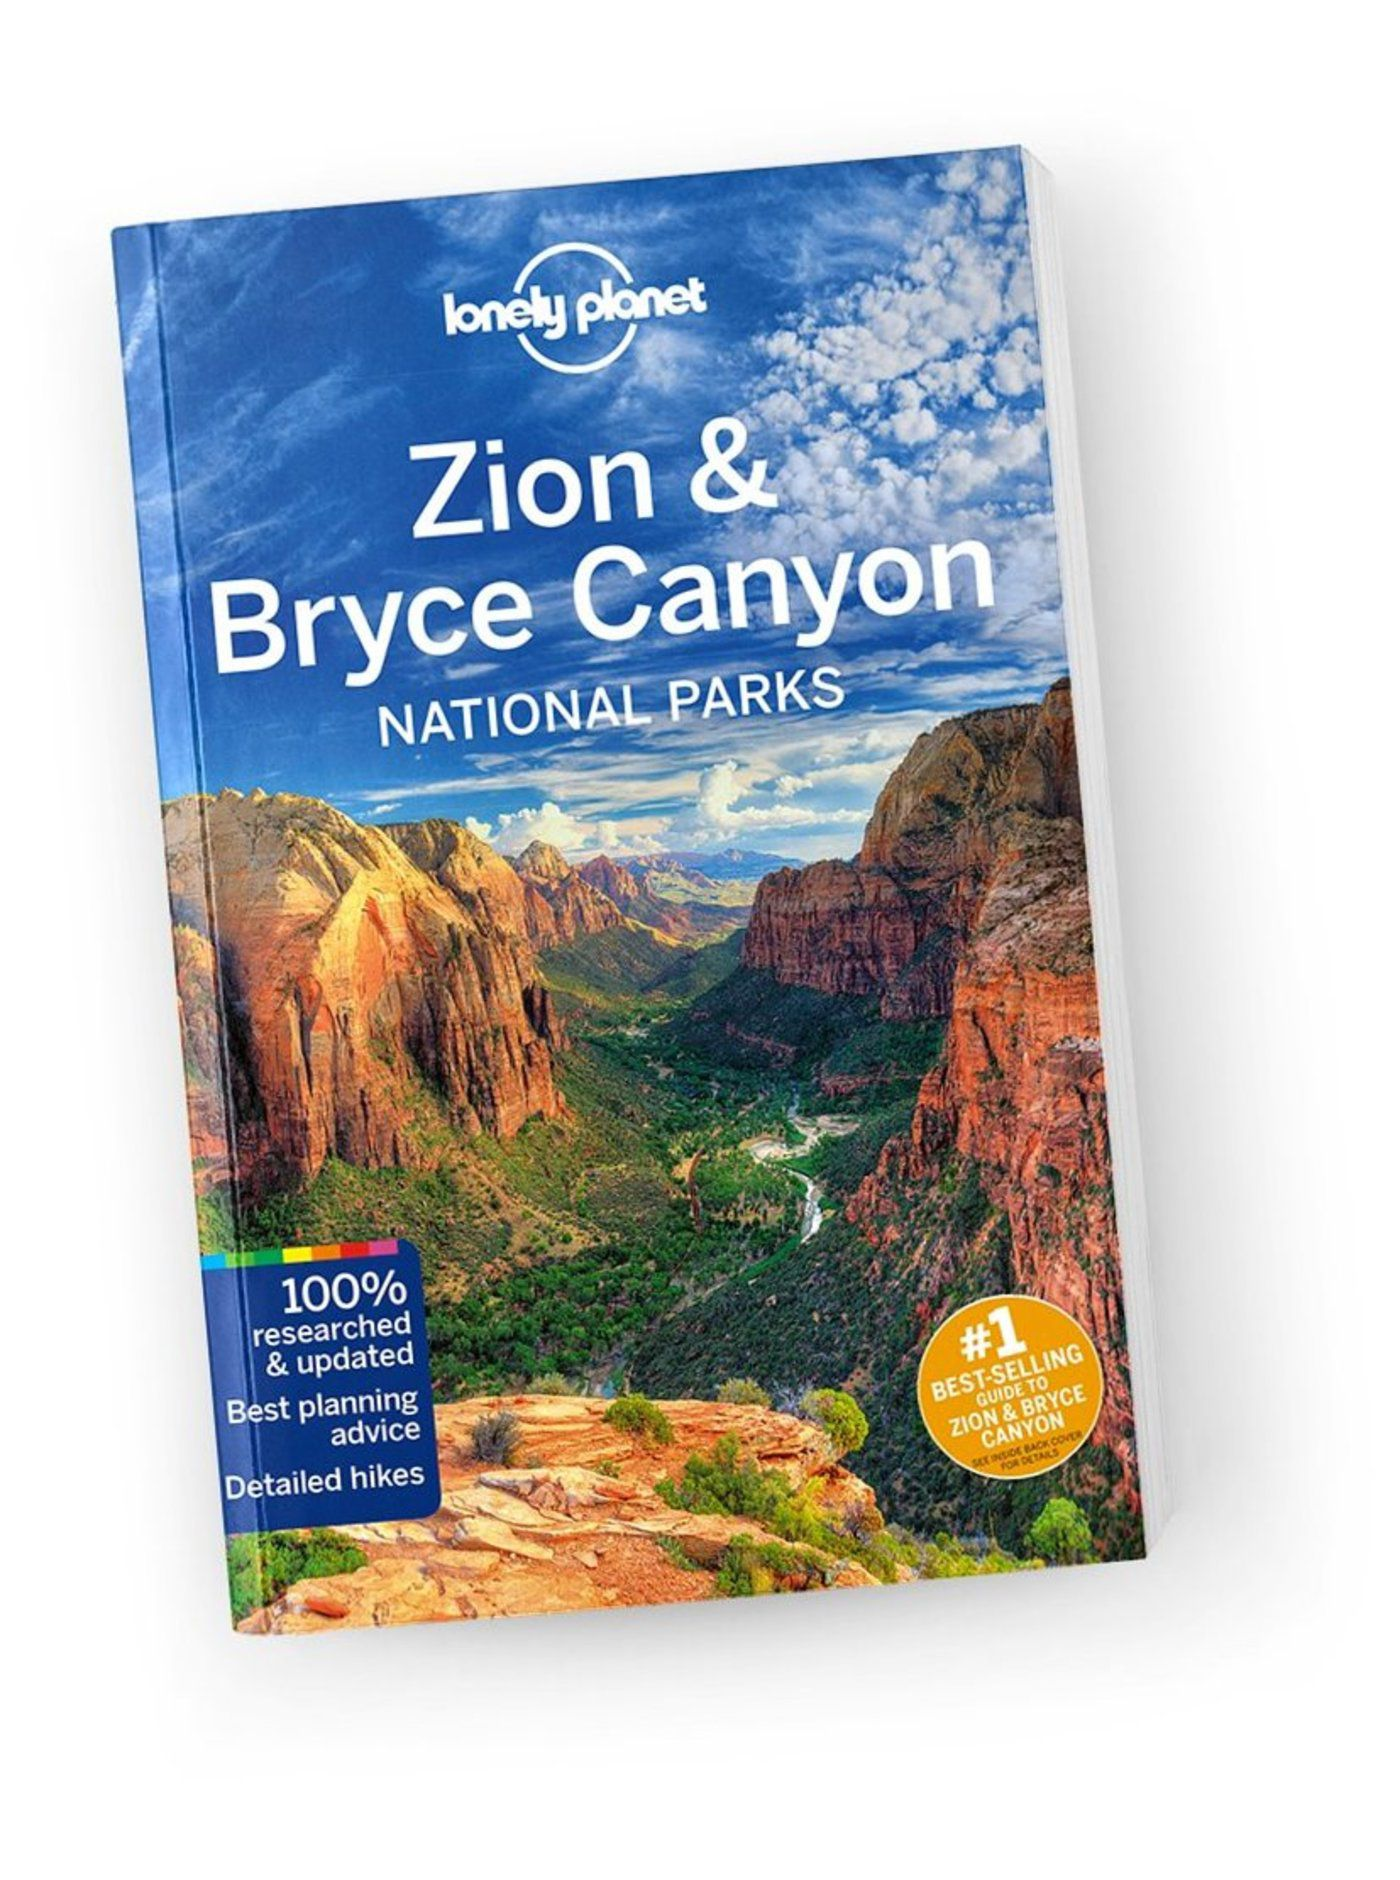 Zion & Bryce Canyon National Parks - Around Bryce Canyon National Park (PDF Chapter), 3rd Edition Apr 2016 by Lonely Planet 9781742202013005